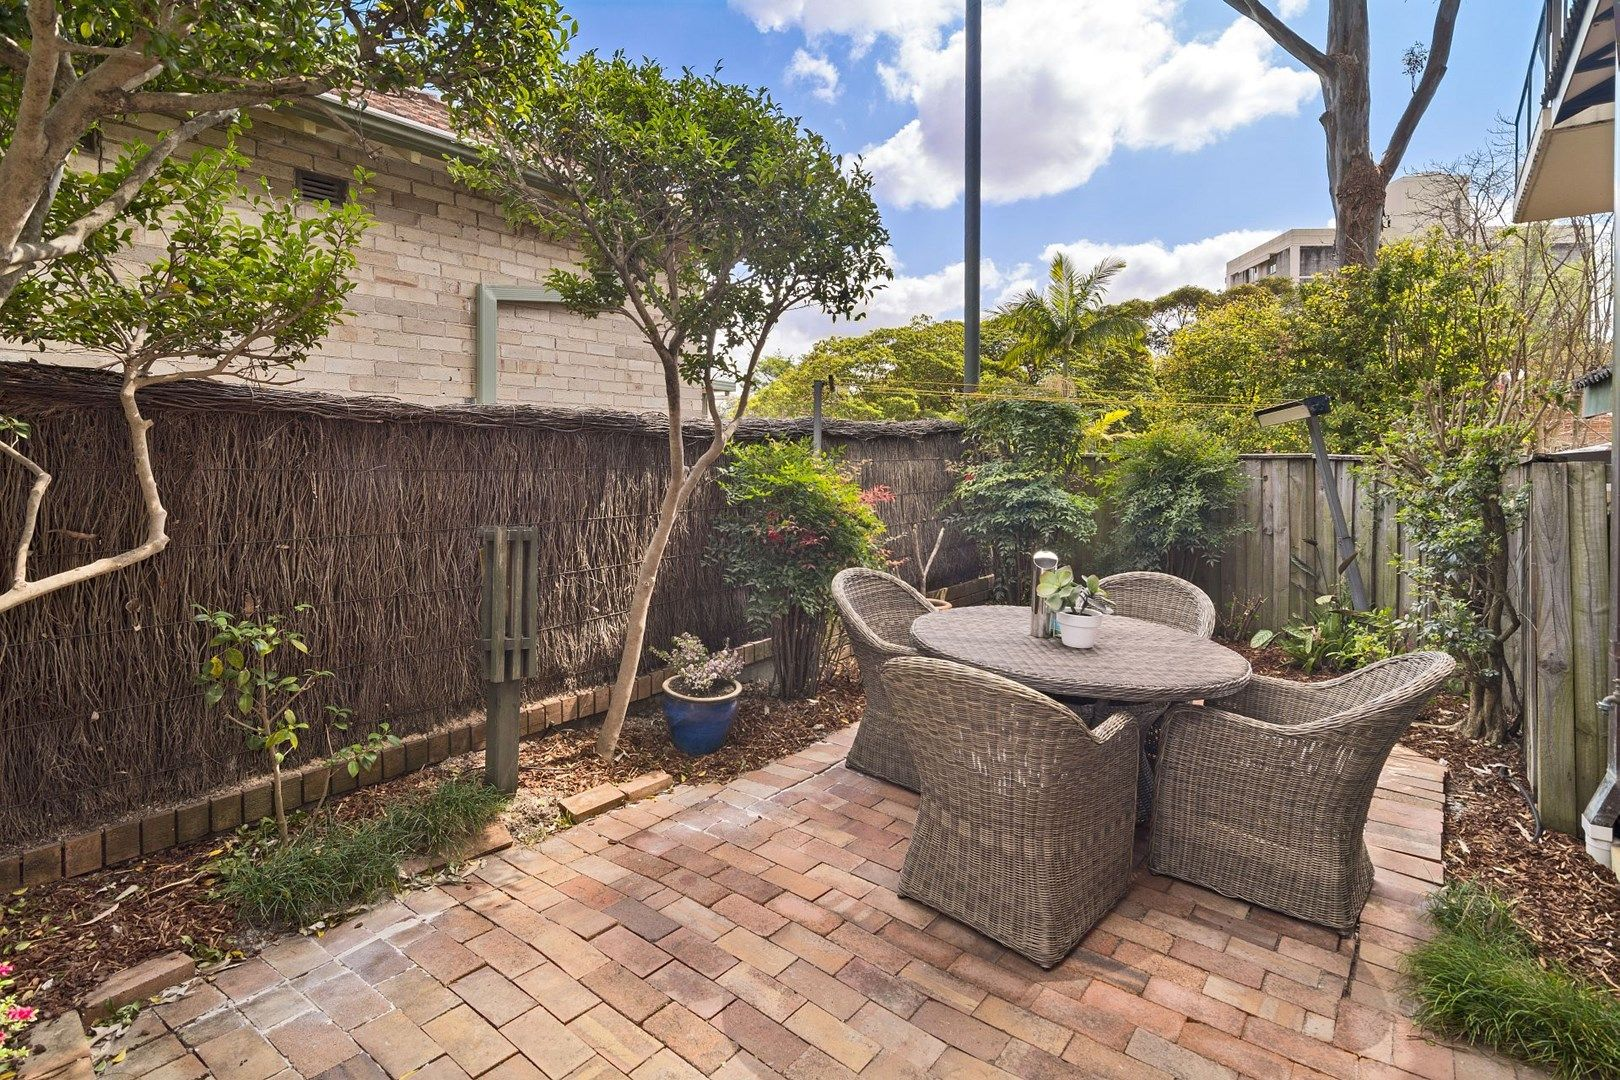 4/8-10 Amherst Street, Cammeray NSW 2062, Image 0